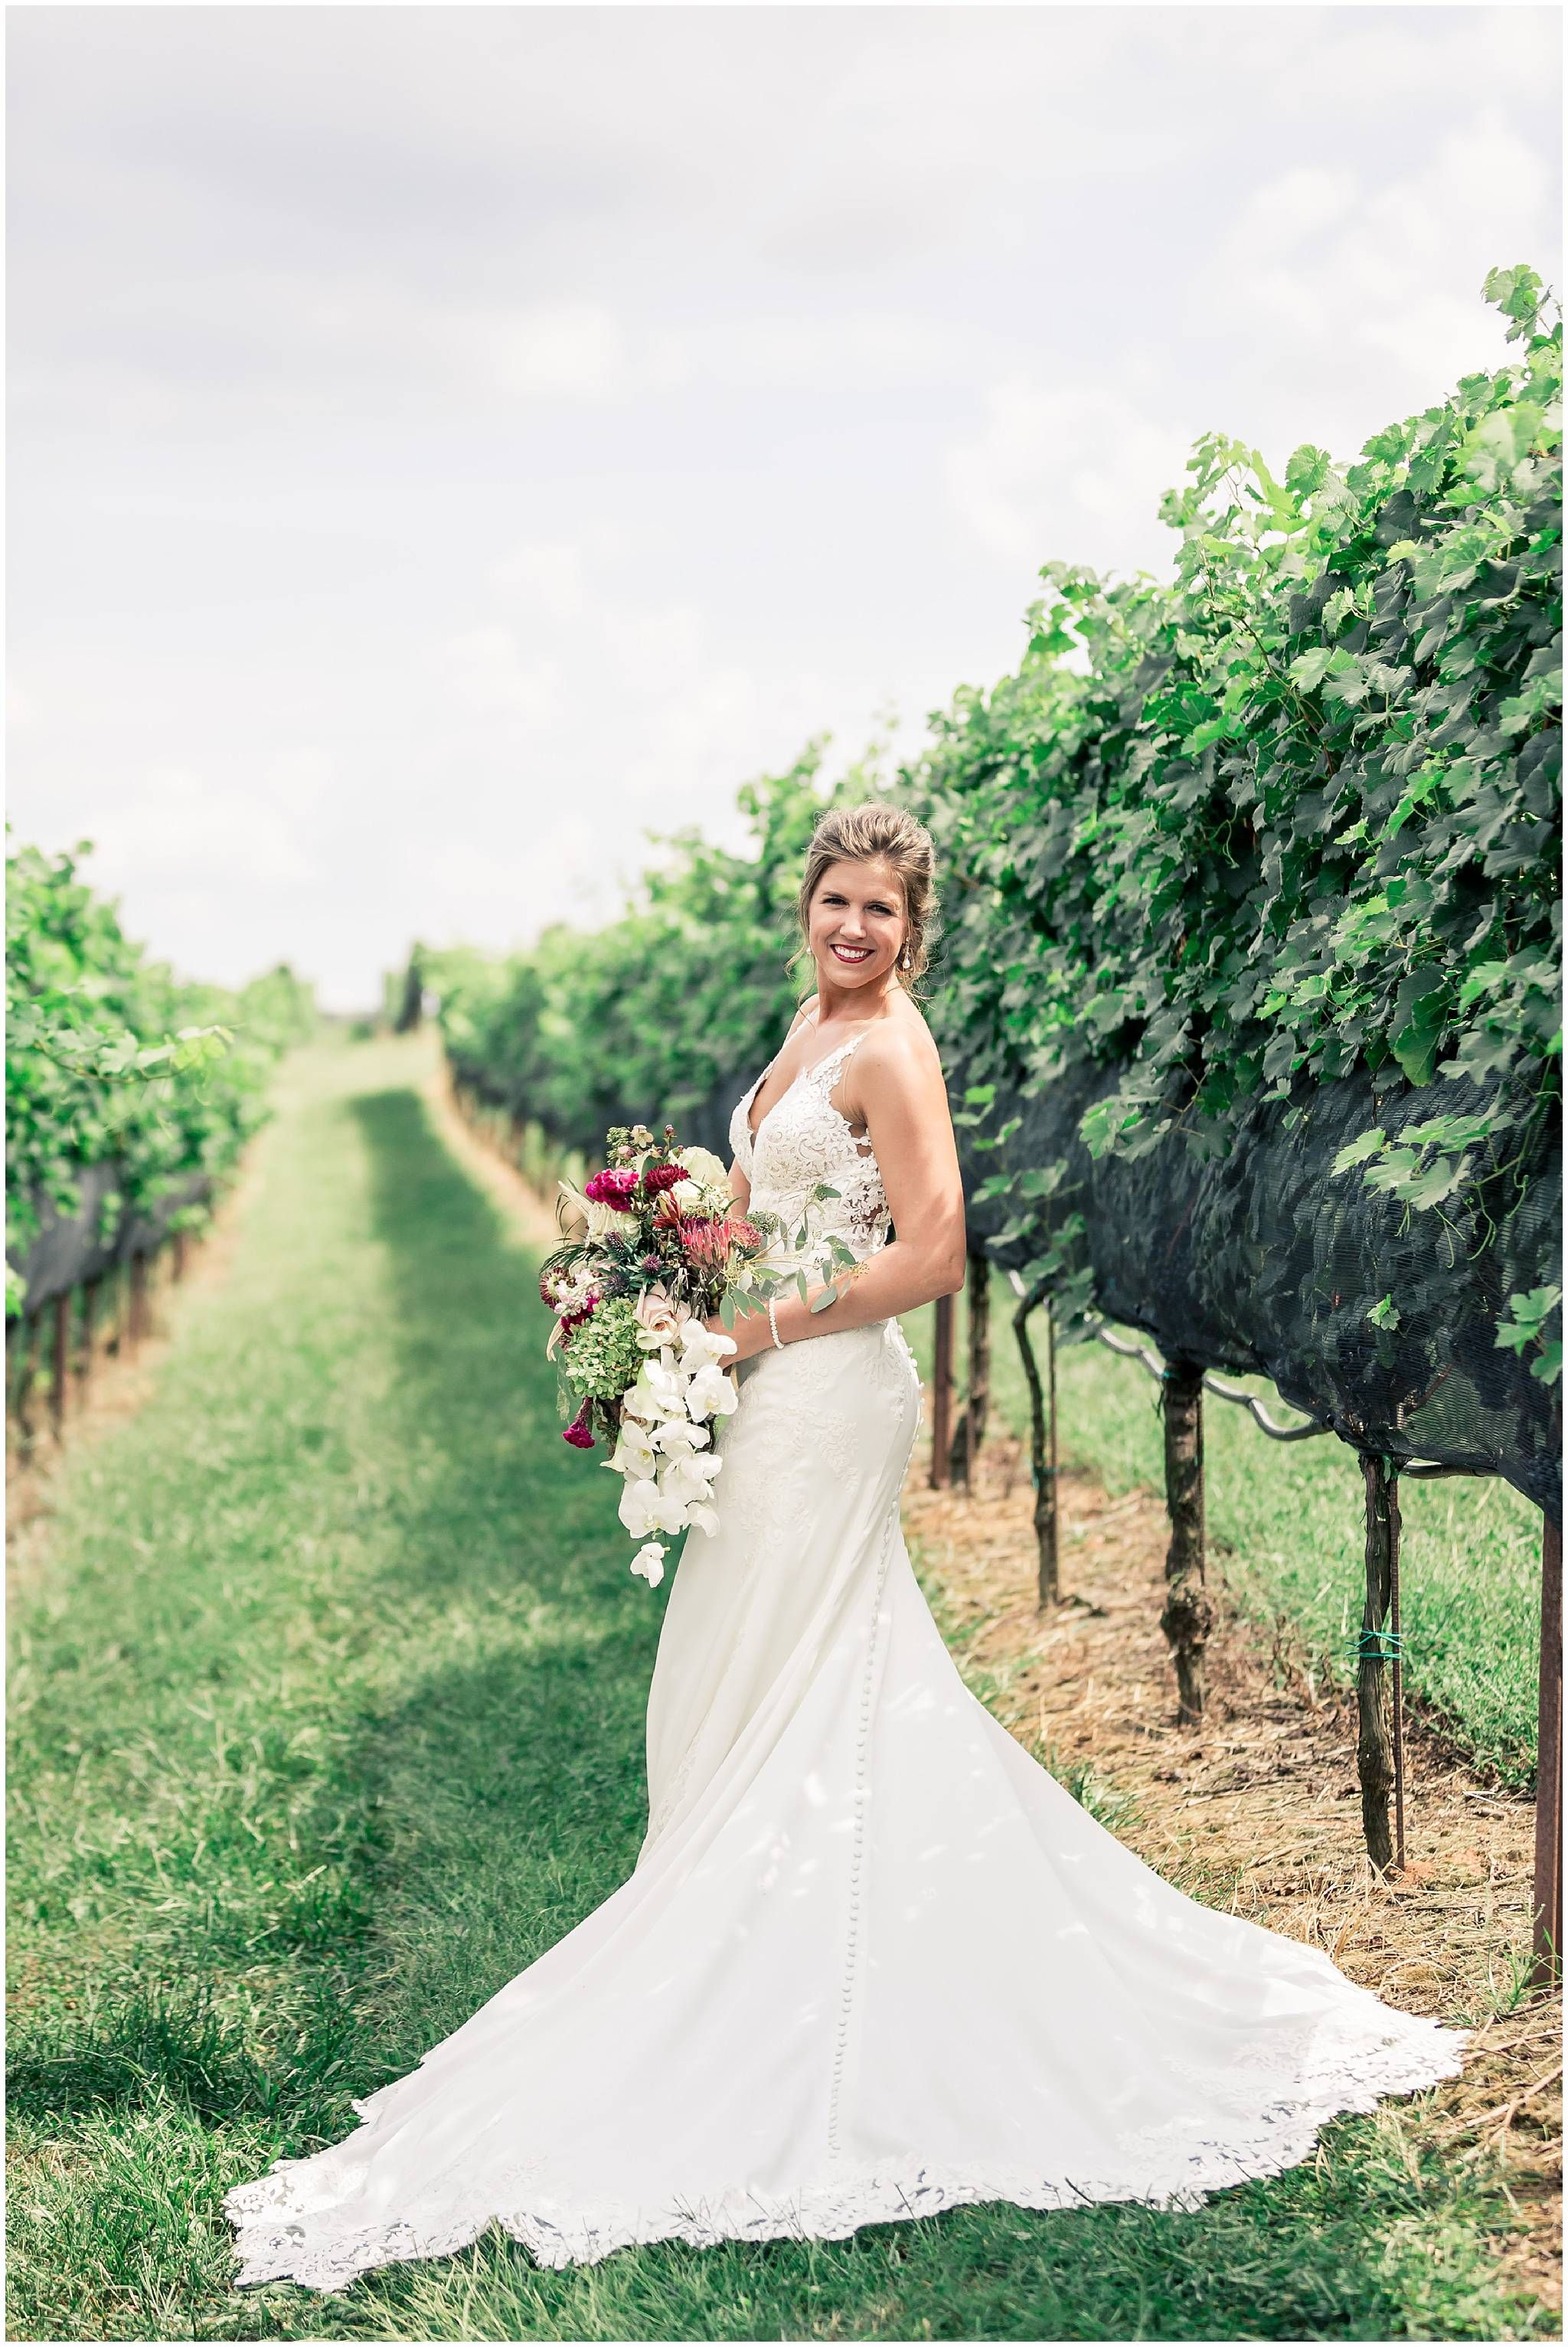 Bridal Portraits In The Vineyard Yonah Mountain Vineyards Wedding Pictures Fall Themed With Navy Burgundy And Greenery: Mountain Themed Wedding Dress At Websimilar.org